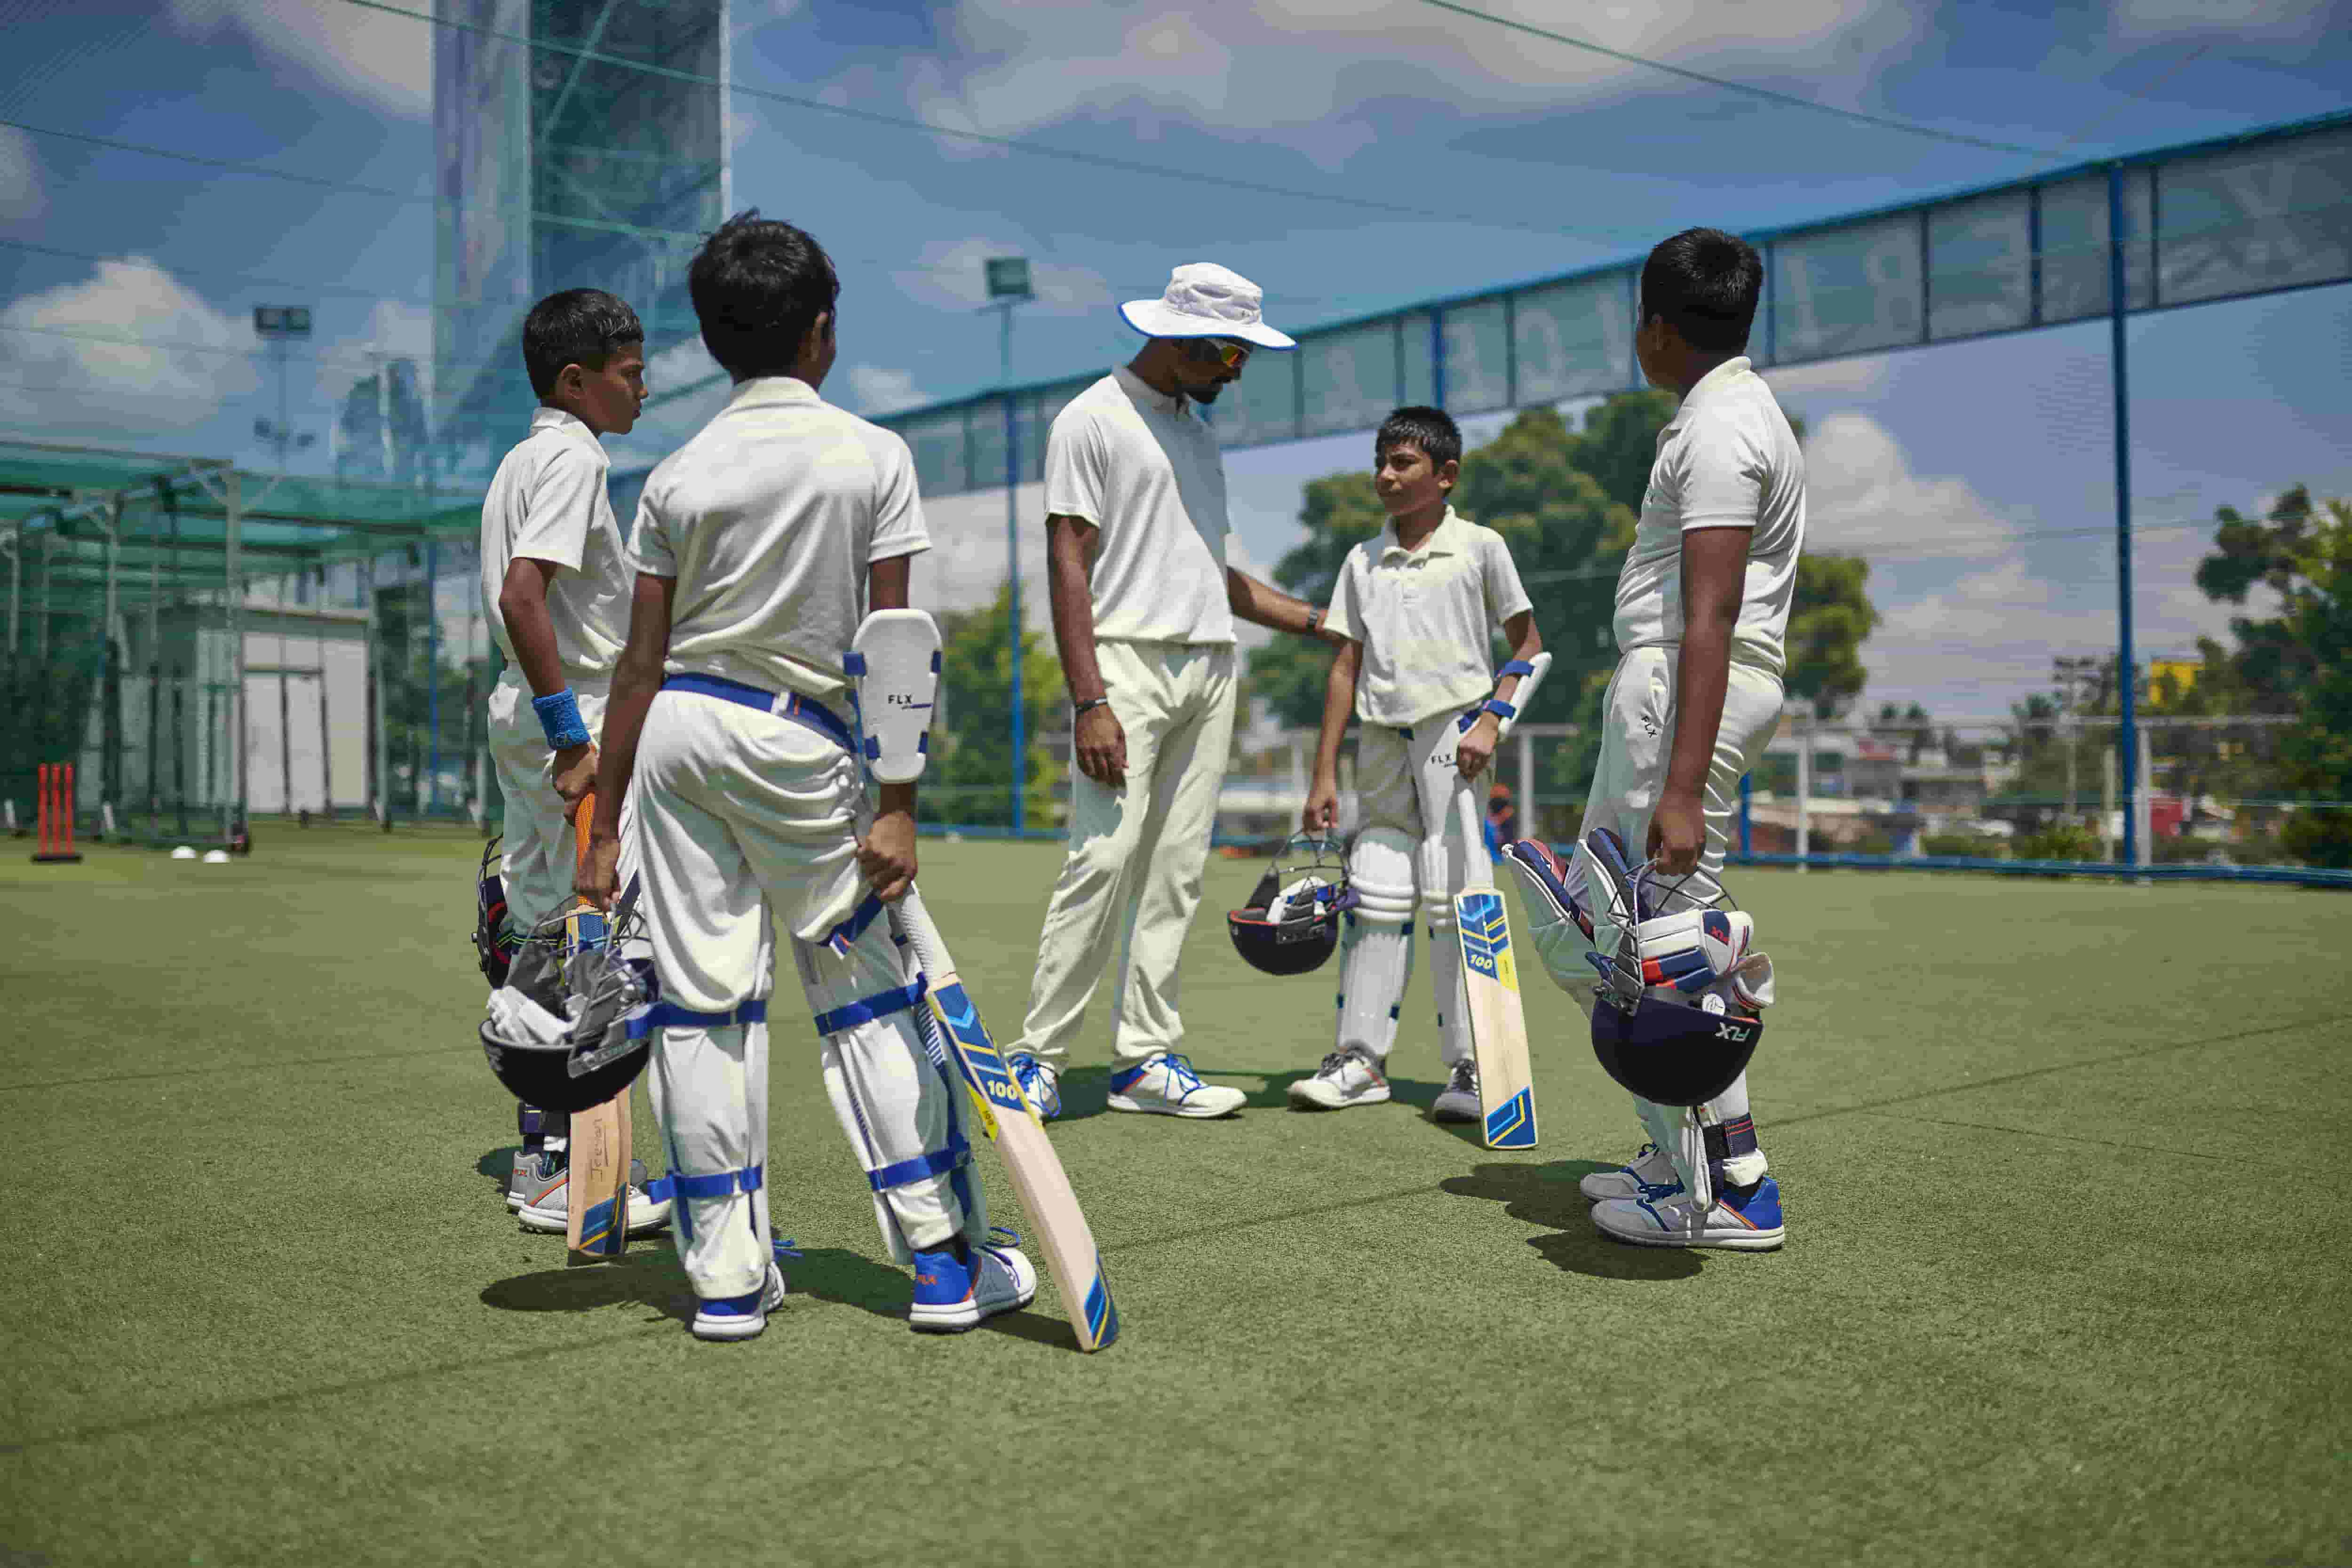 Warm-Up Exercises and Training Routines for Junior Cricketers